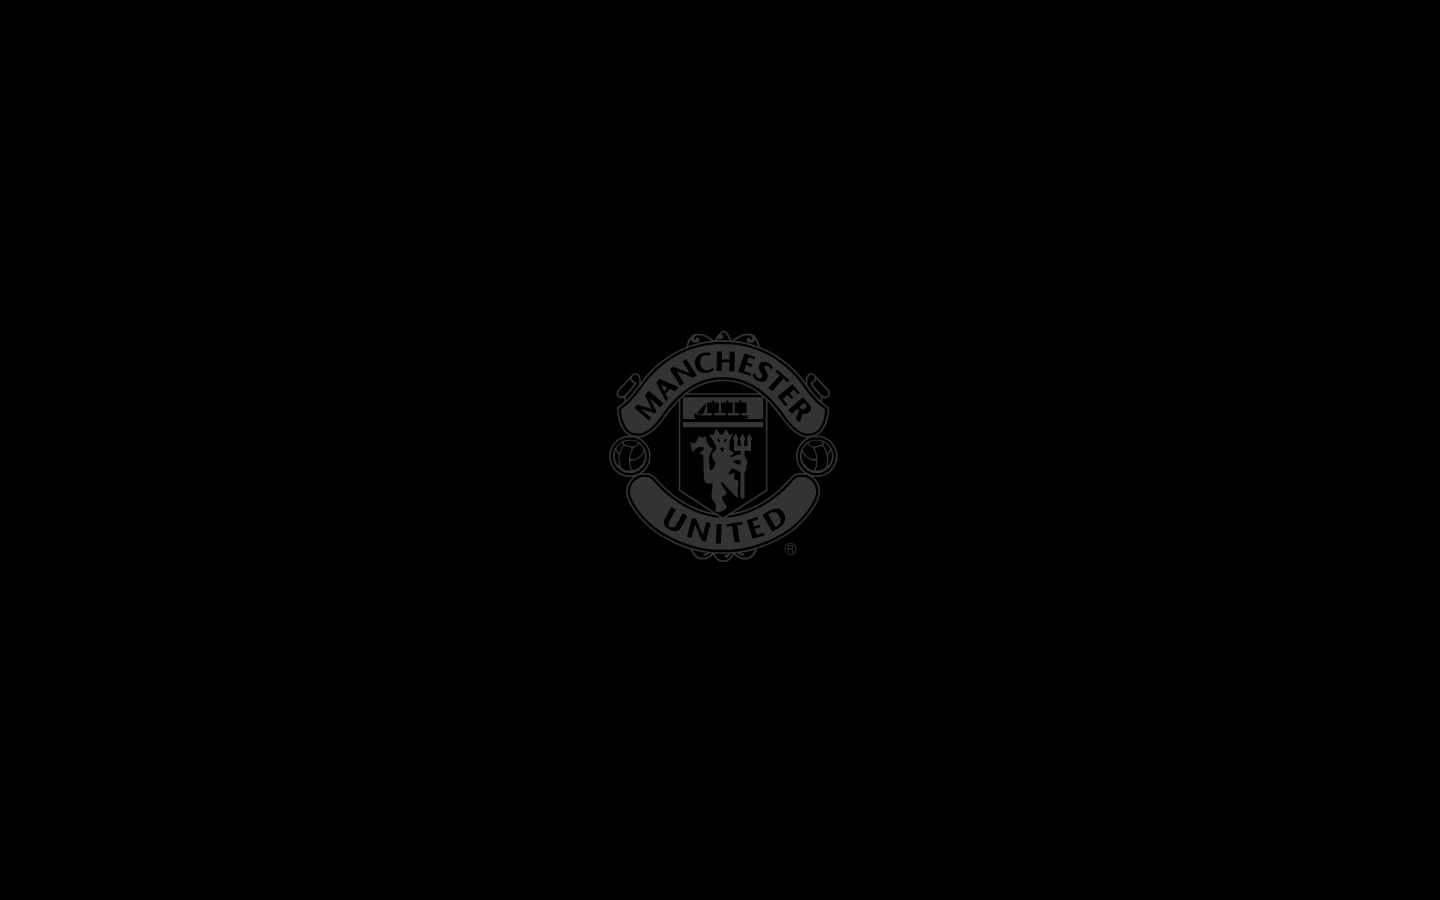 wallpapers logo manchester united terbaru 2016 wallpaper